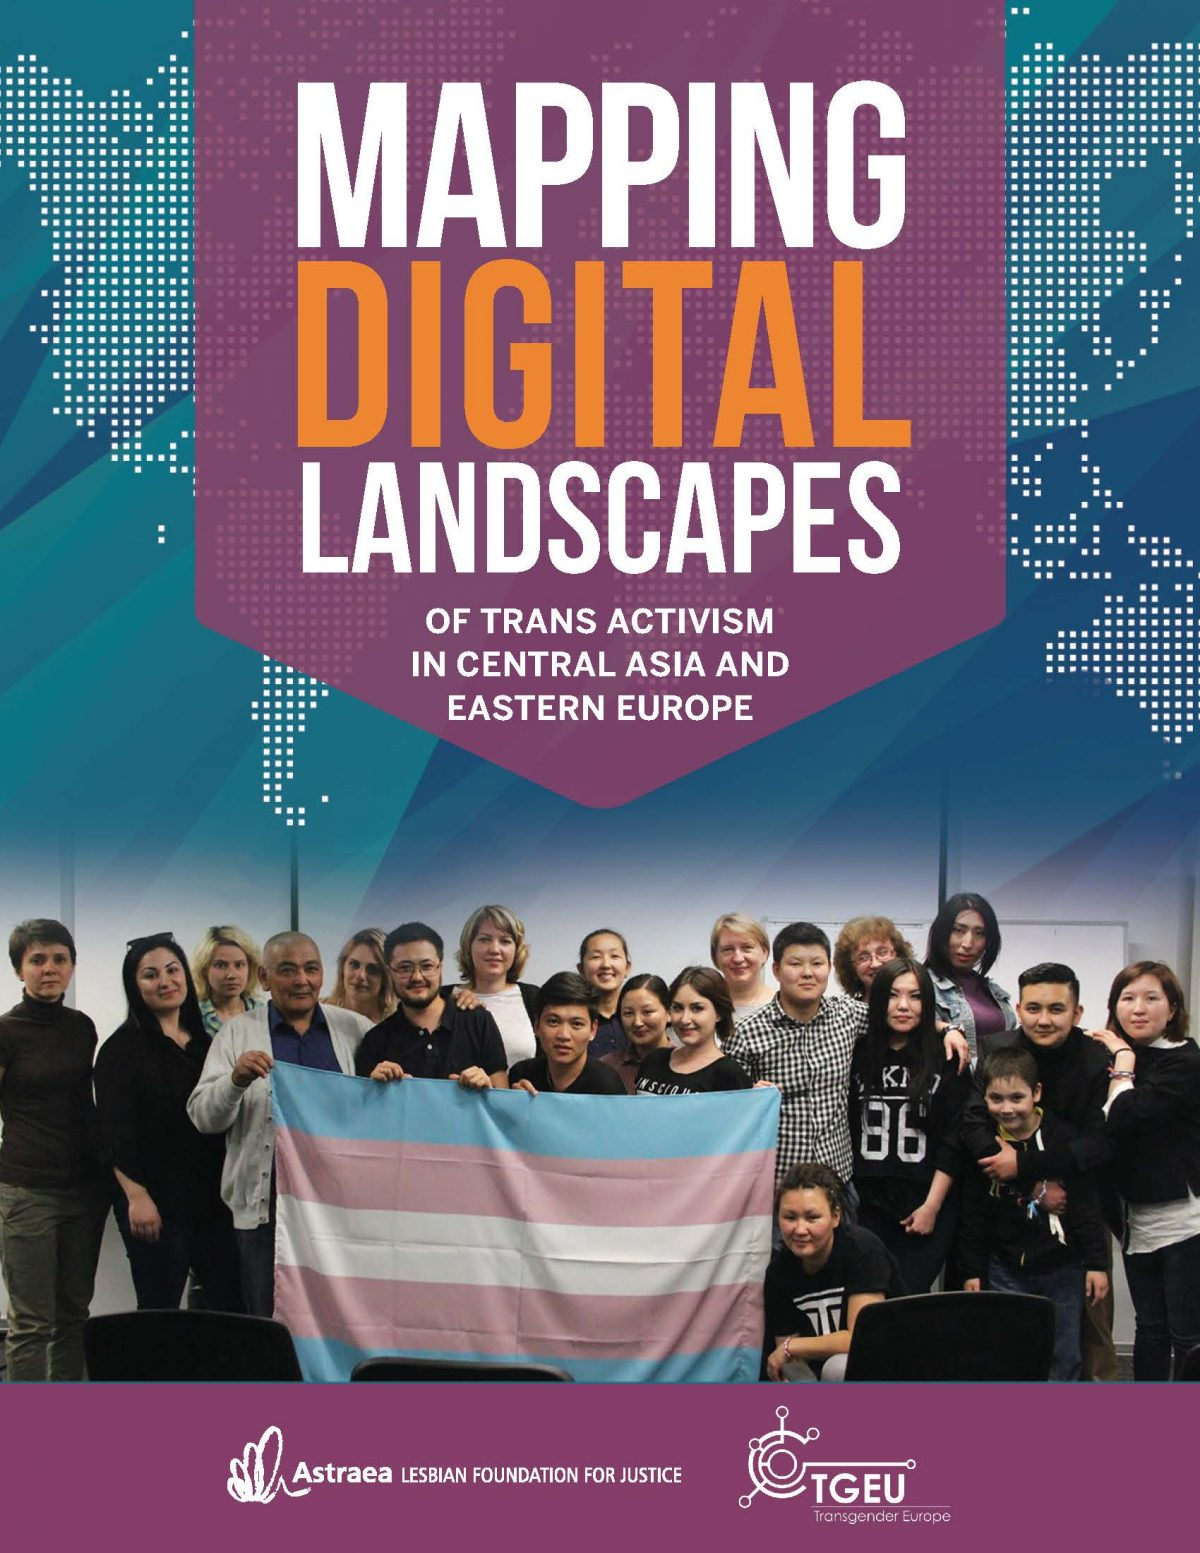 Mapping Digital Landscapes of Trans Activism in Central Asia and Eastern Europe